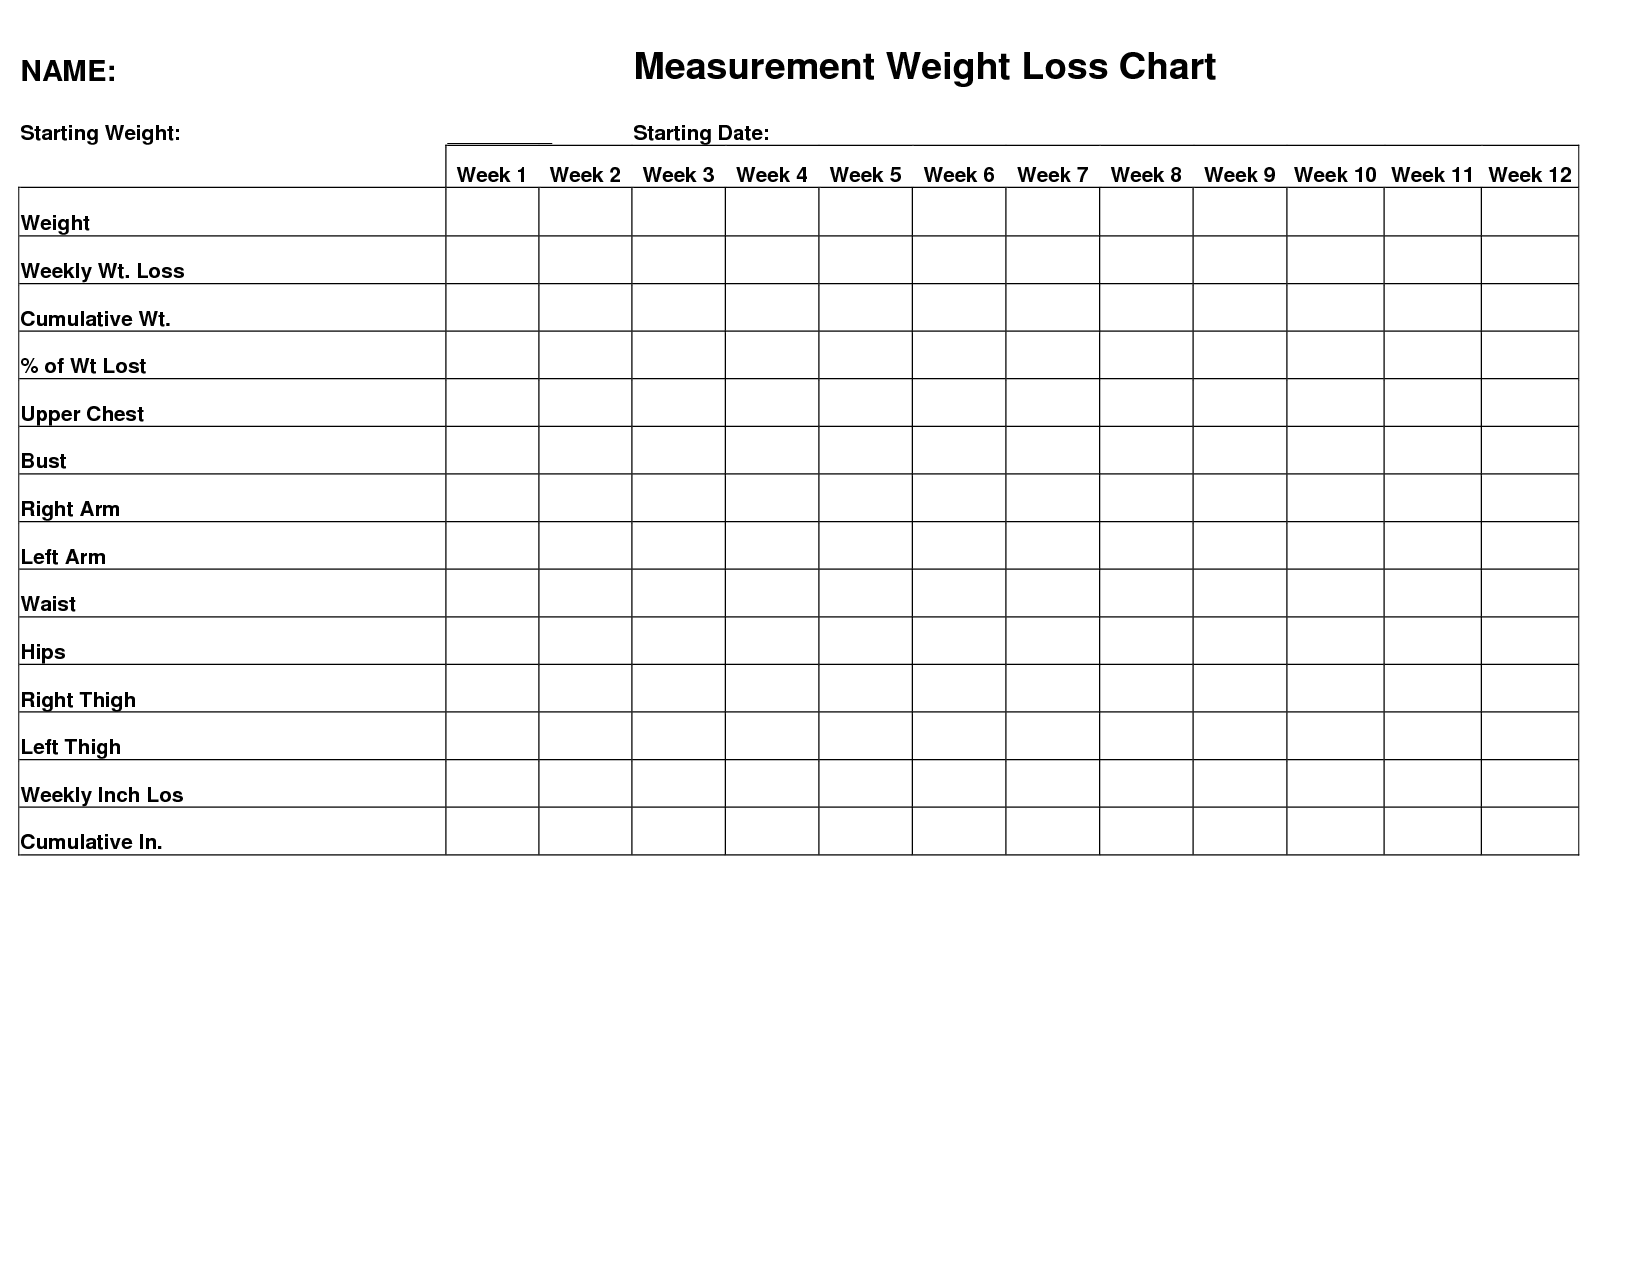 female weight measurement body silhouette outline | Measurement ...